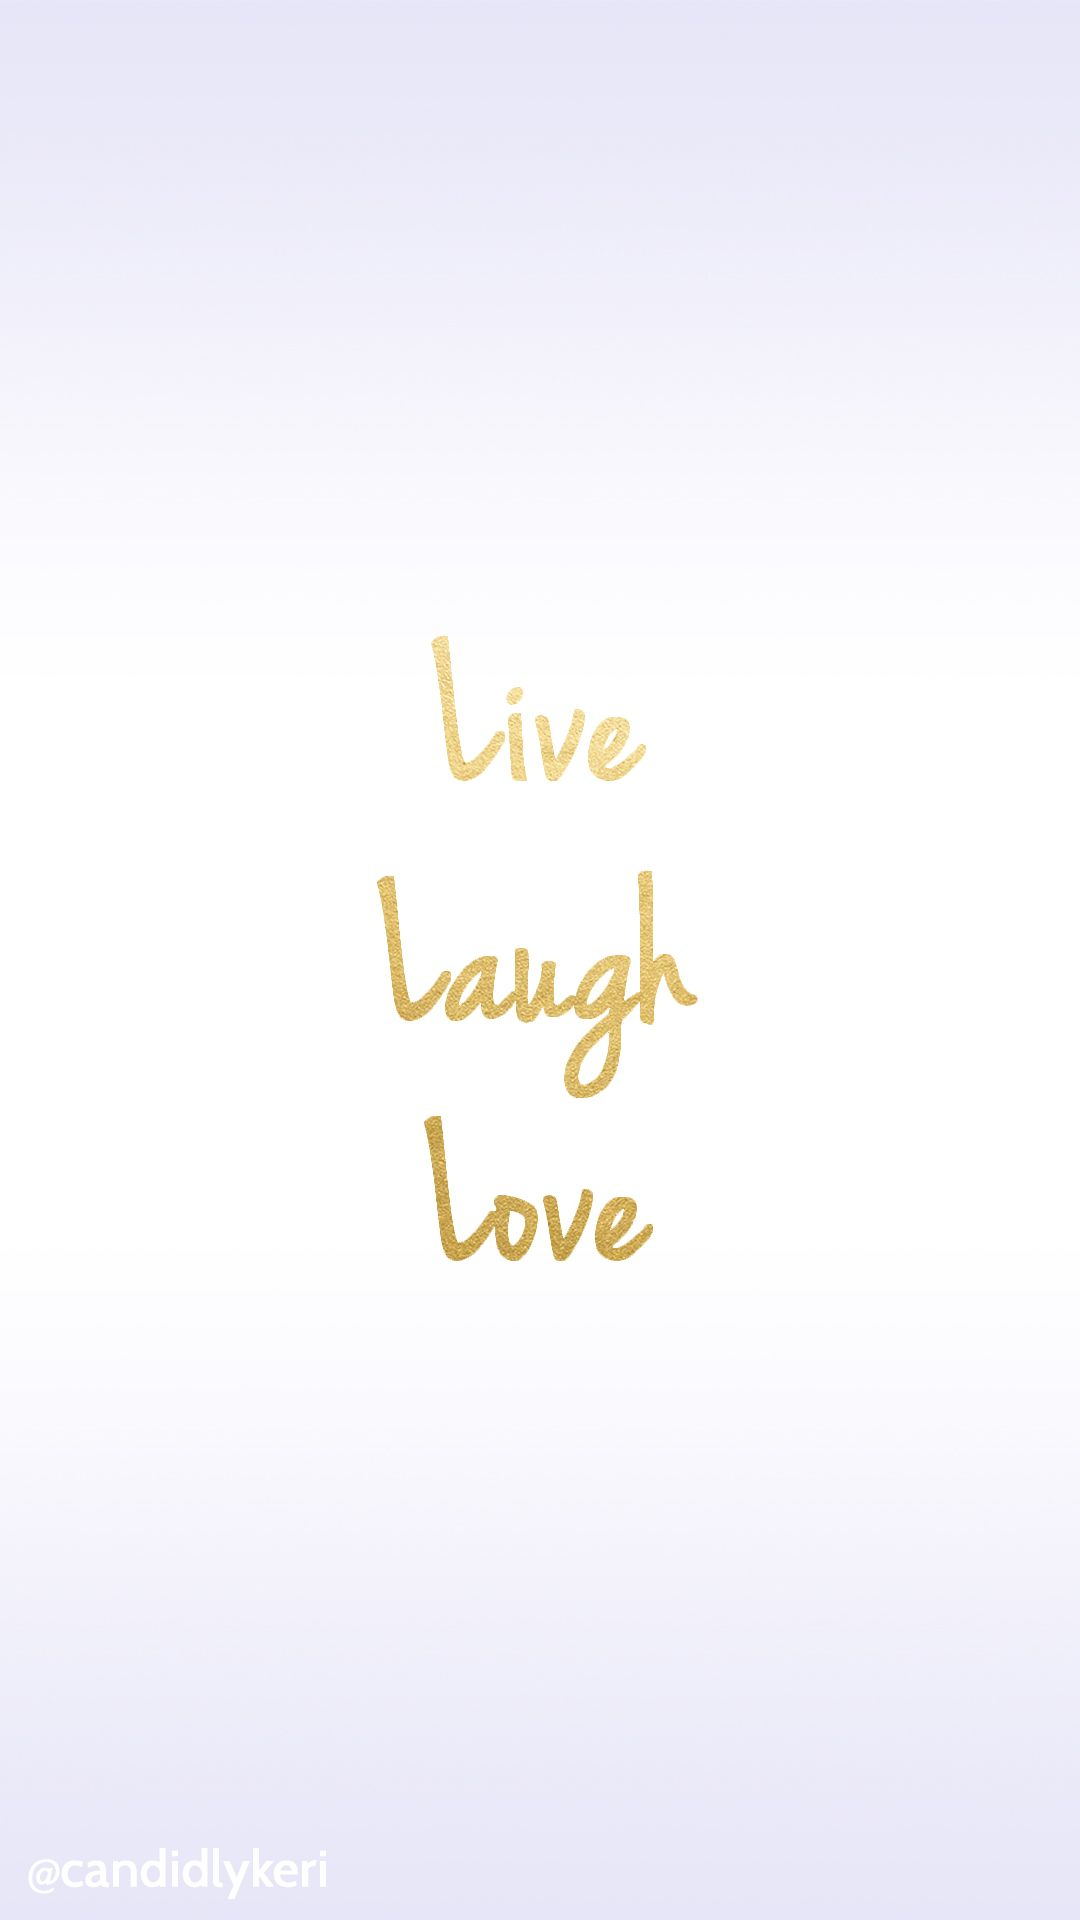 Live Laugh Love Gold Foil Wallpaper Free Download For Iphone Android Or Desktop Background Iphone Wallpaper Quotes Love Love Quotes Wallpaper Live Laugh Love